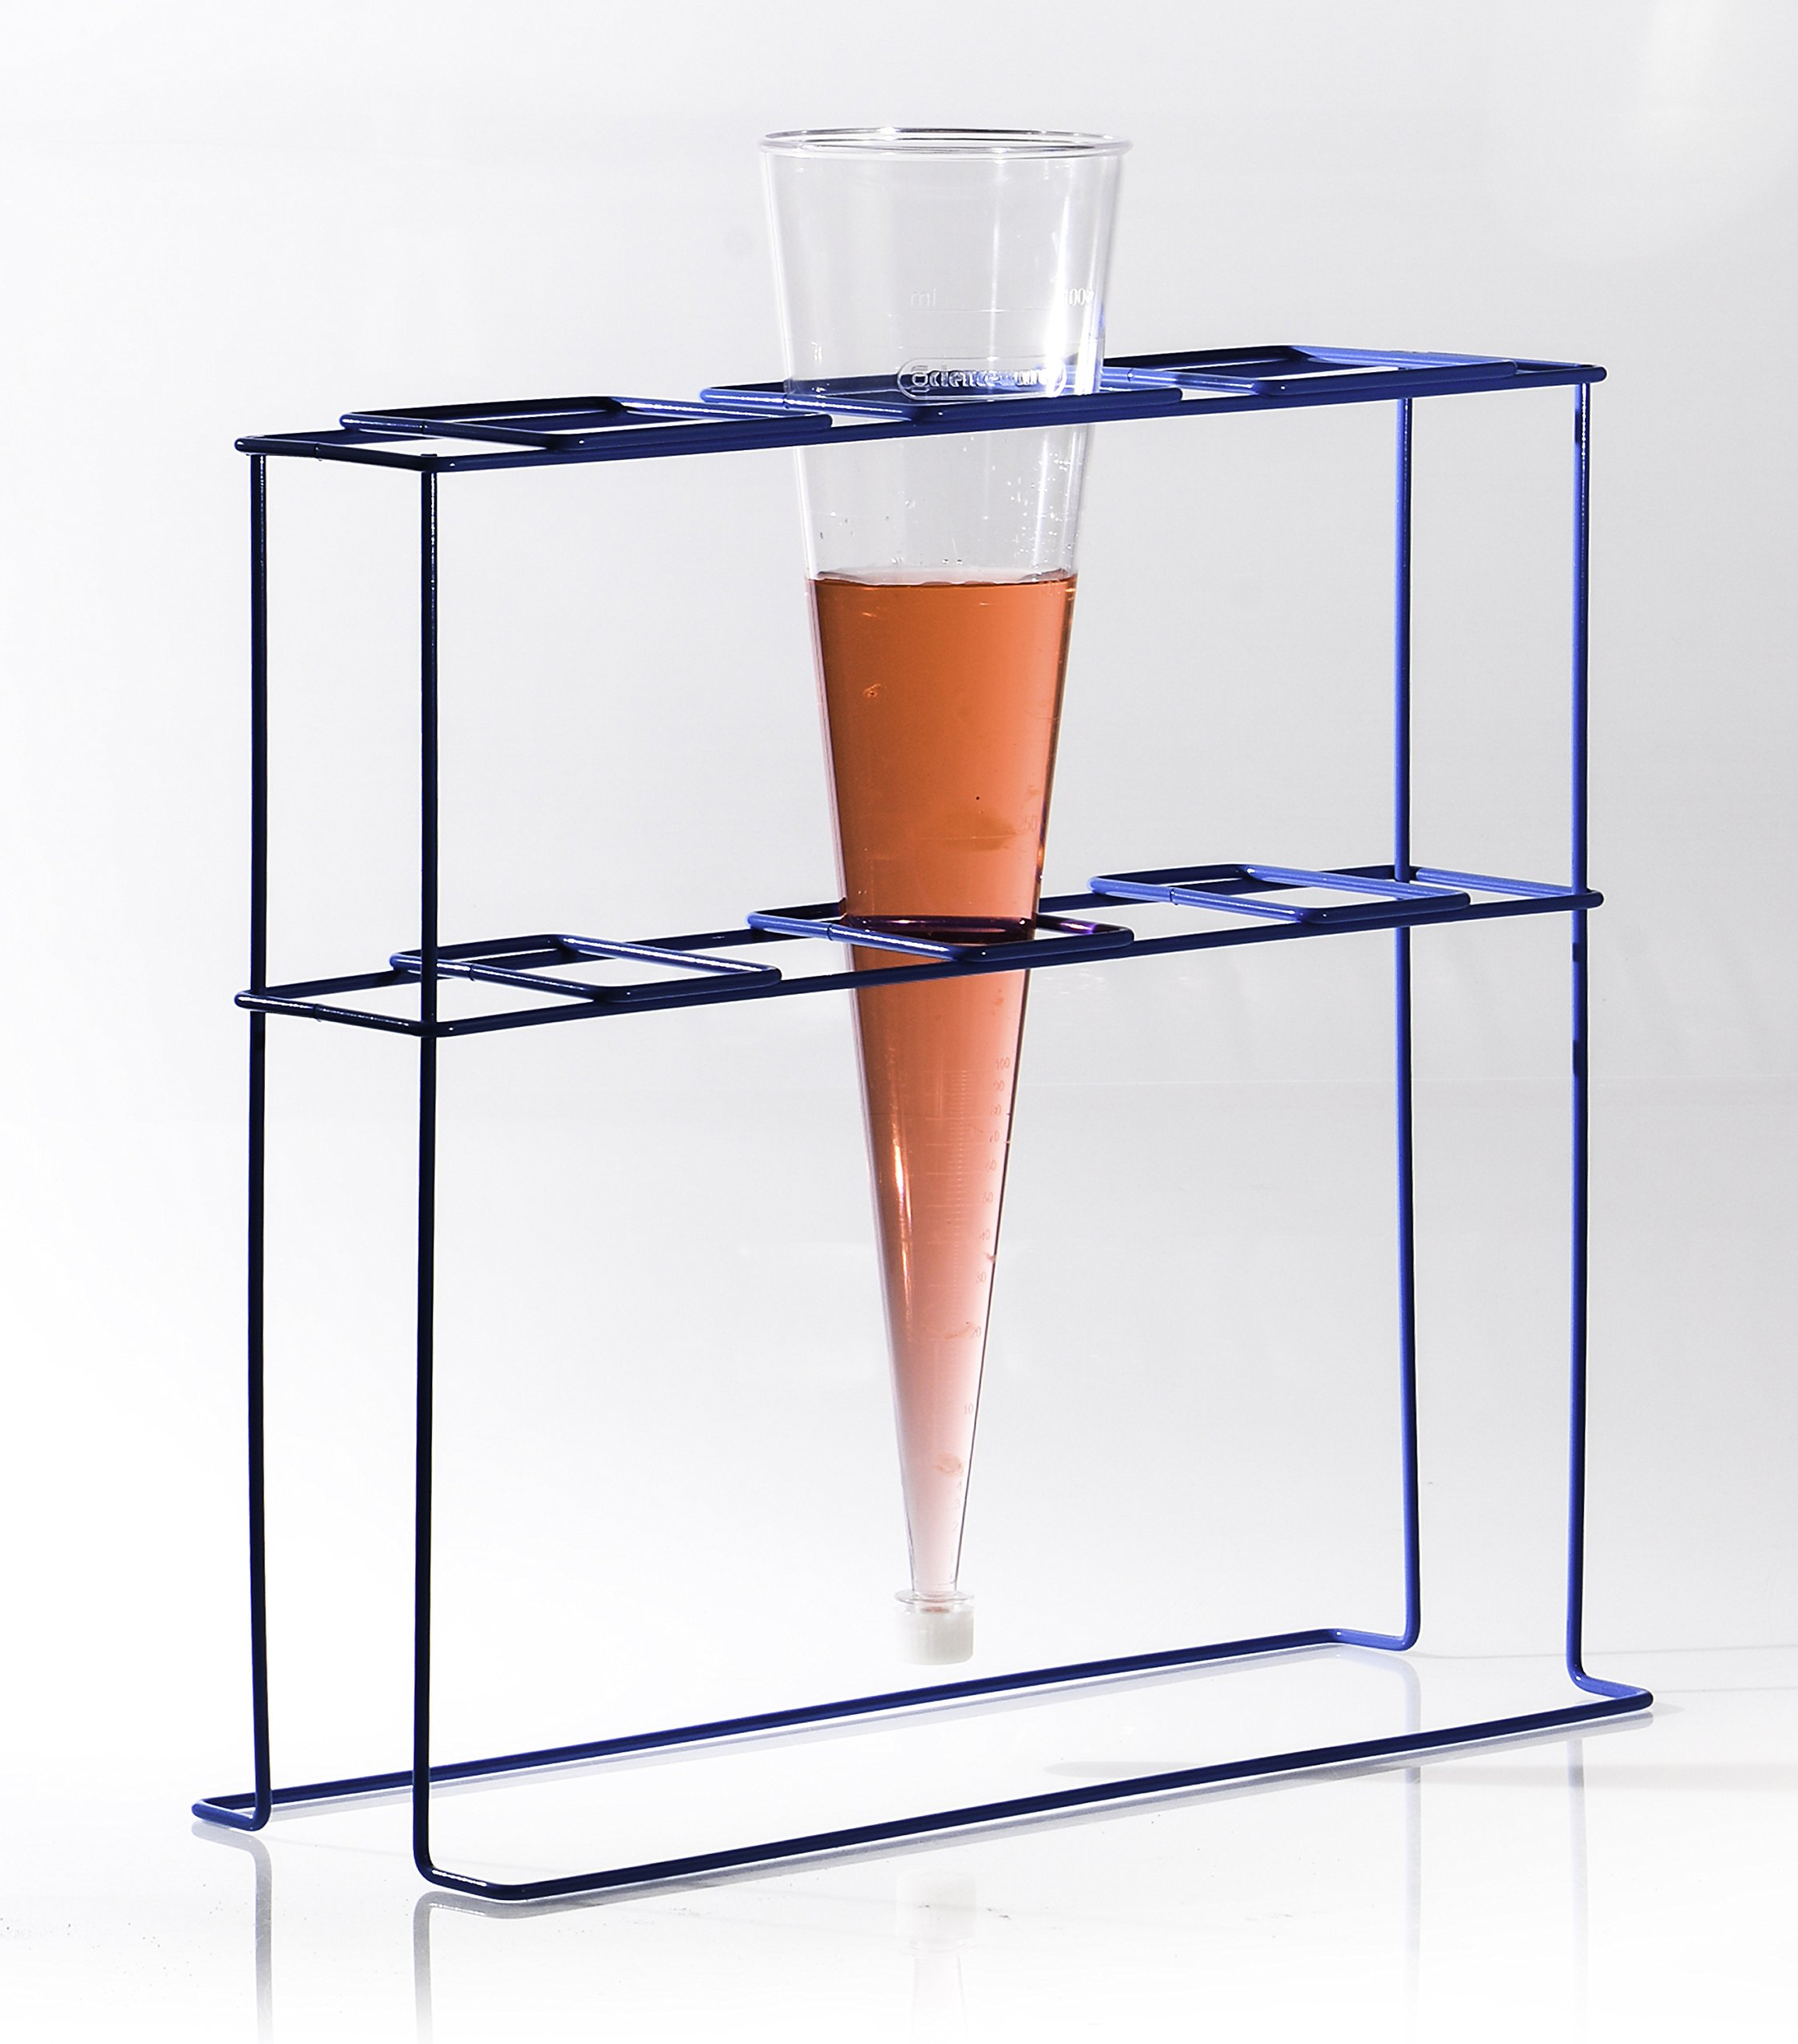 Bel-Art Poxygrid Imhoff Cone Rack; 3 Places, 17¹⁄₂ x 6³⁄₄ x 16 in. (F38993-0003) by SP Scienceware (Image #3)